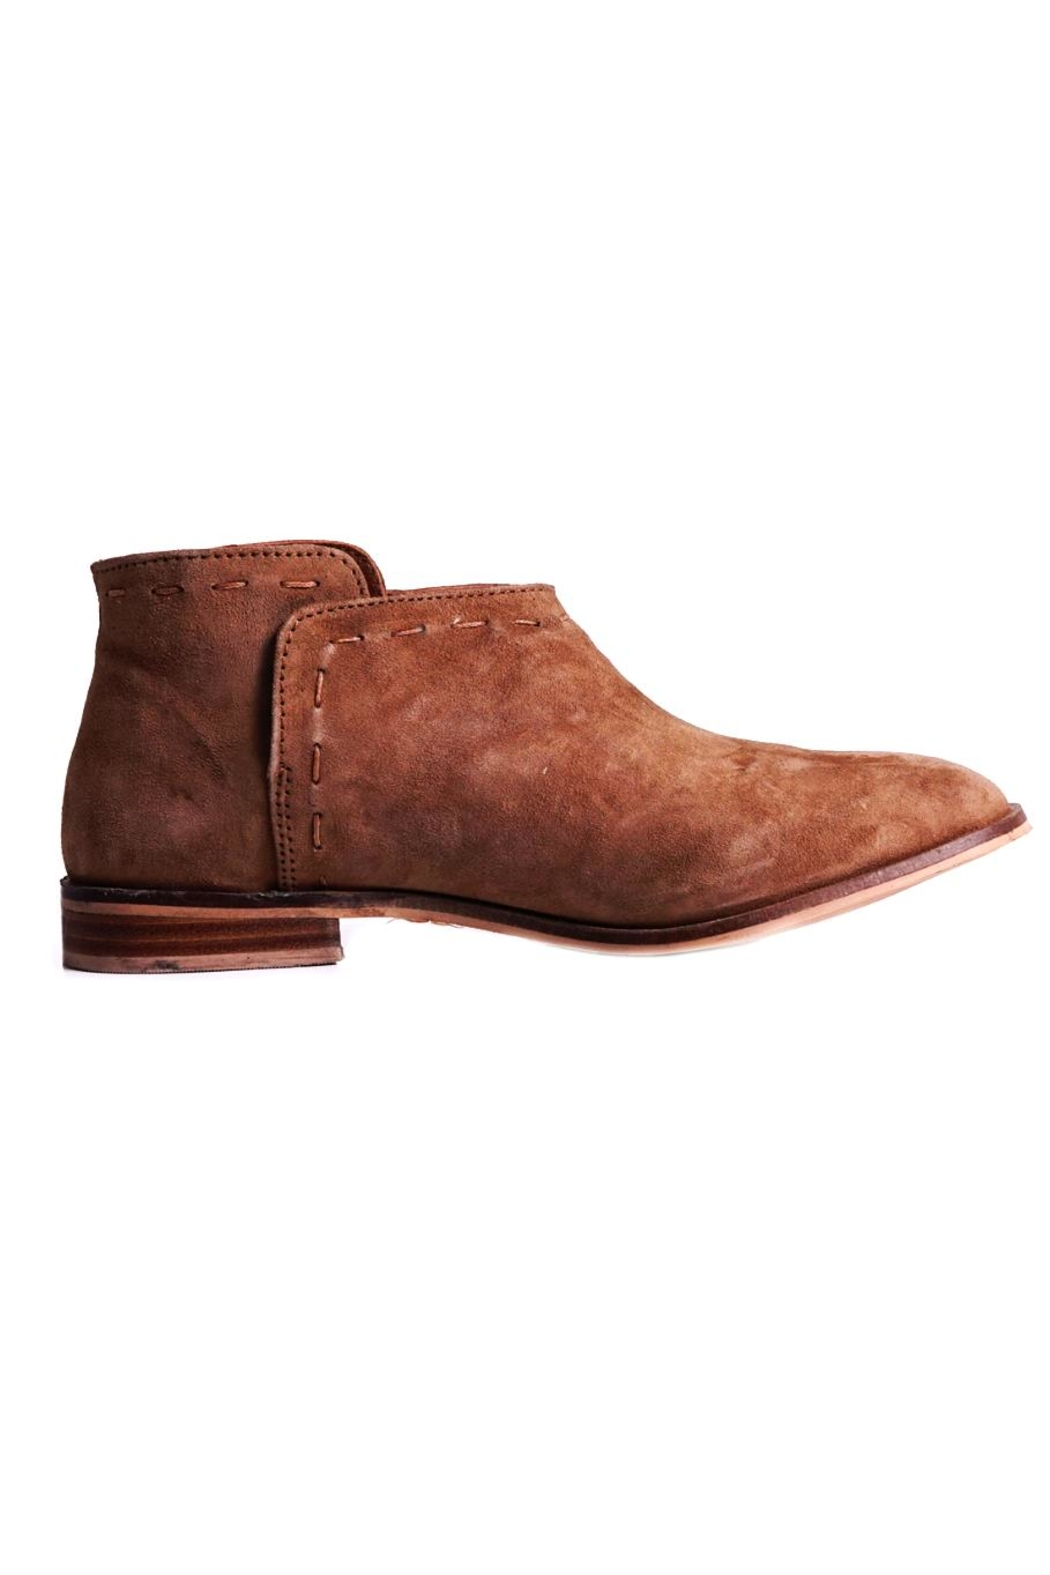 Rebels Suede Odell Bootie - Side Cropped Image